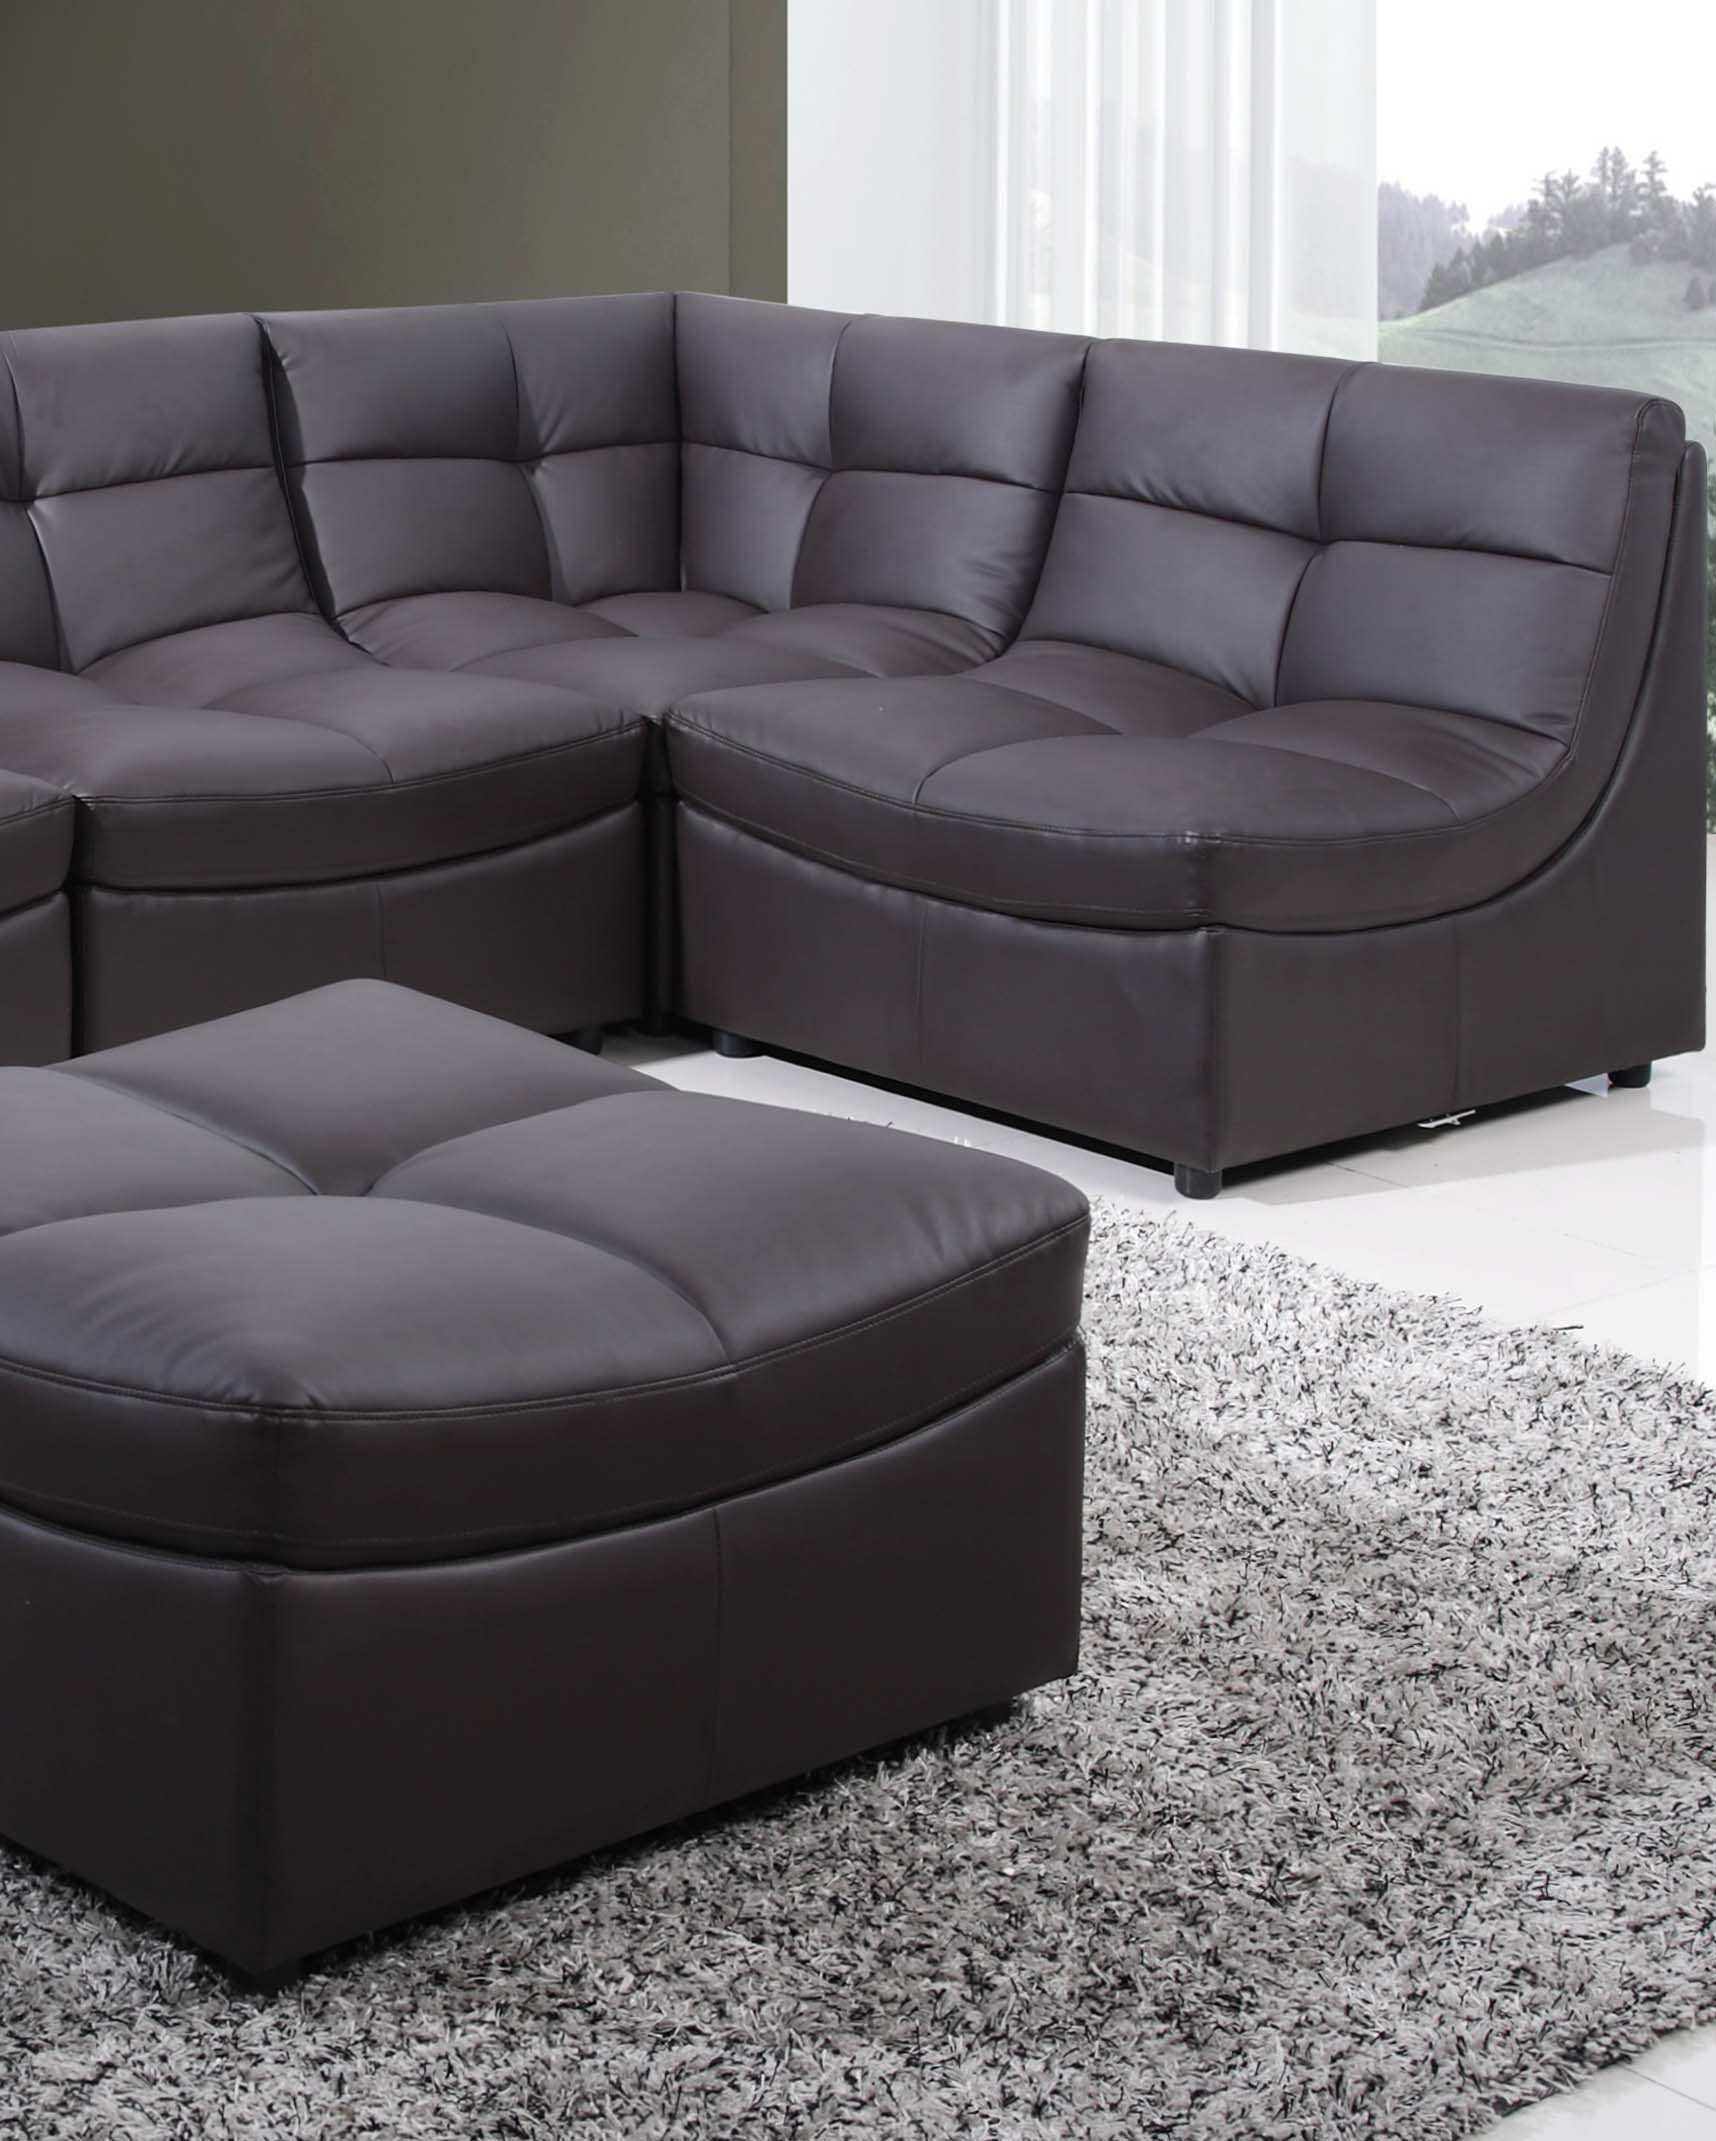 Brown sectional couch 6 pc set 9148 brn hot sectionals for 6 pc sectional living room